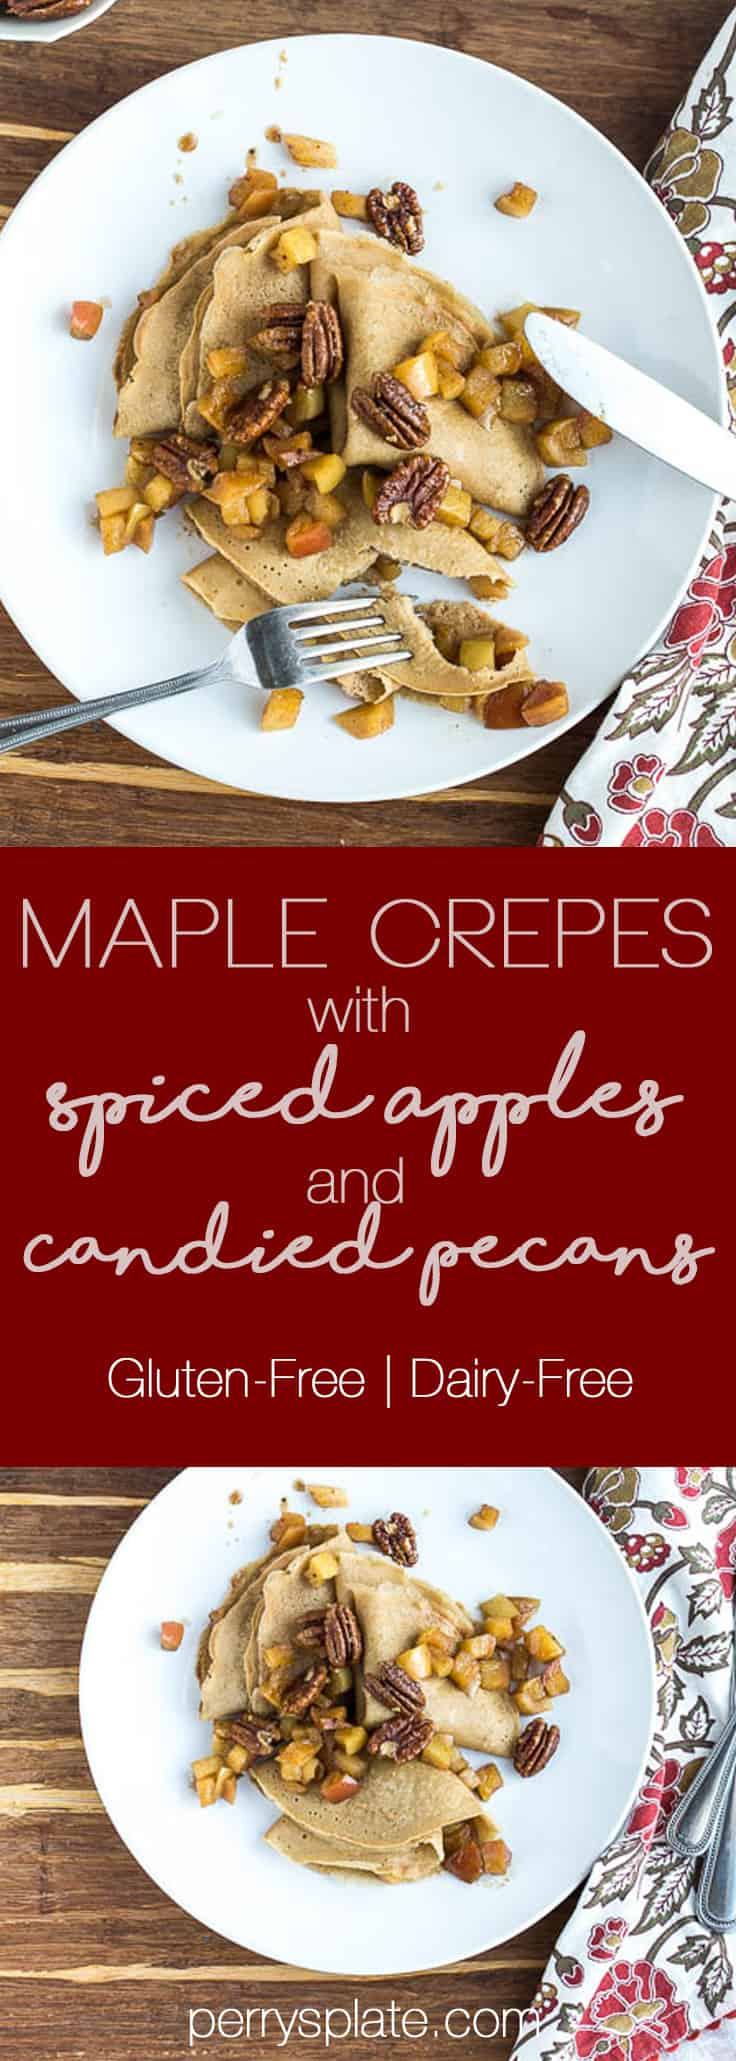 Maple Crepes with Spiced Apples and Glazed Pecans | gluten-free recipes | dairy-free recipes | apple recipes | breakfast | brunch | perrysplate.com